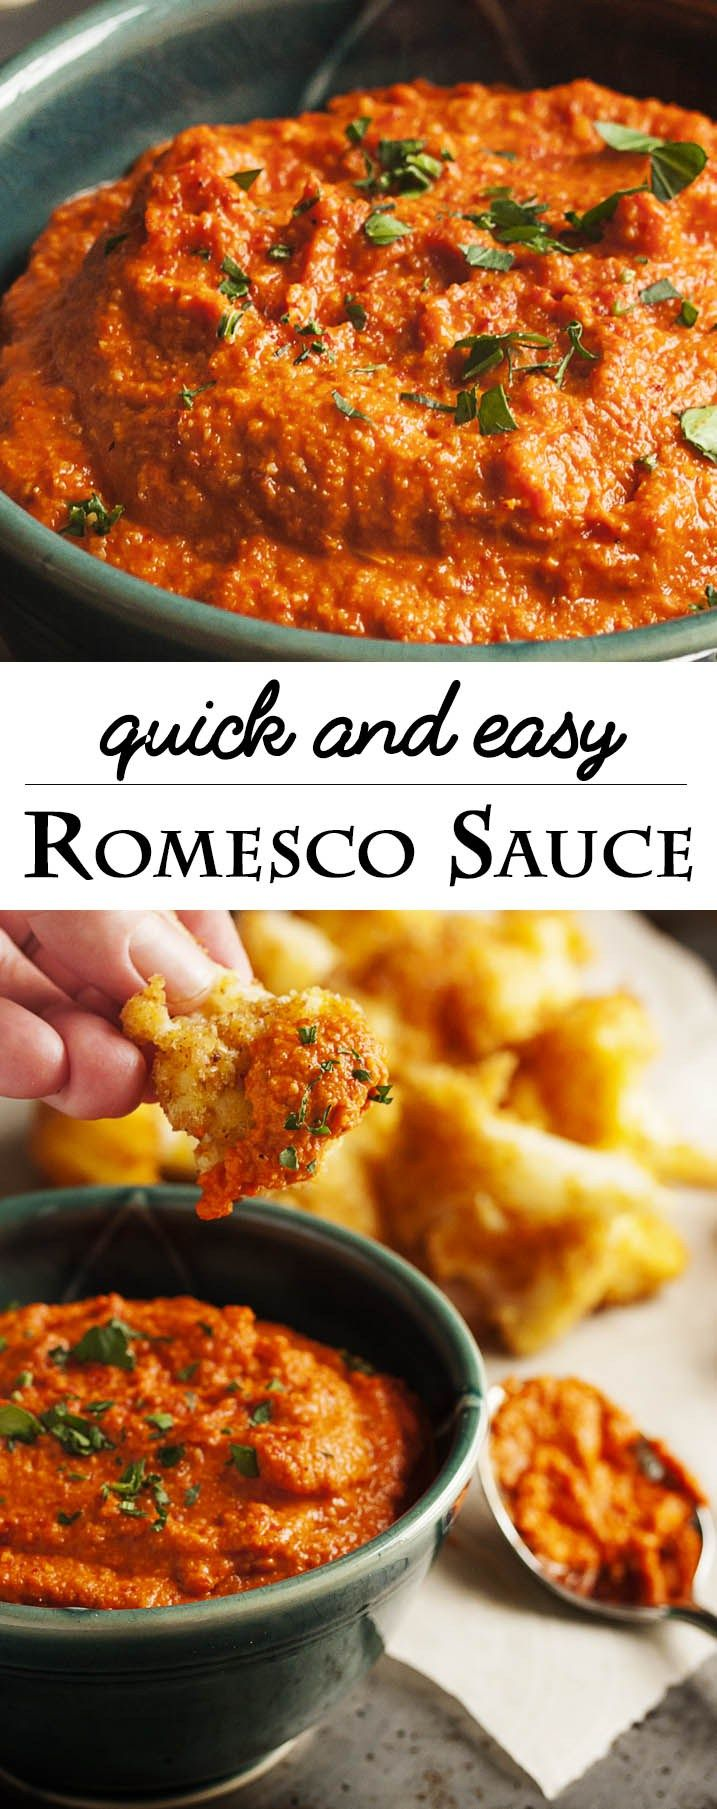 Quick & Easy Romesco Sauce - This 5 minute sauce packs a powerful punch which enhances everything! Great with meats, seafood, bread and MORE! Super quick. Super versatile. And super tasty. | justalittlebitofbacon.com